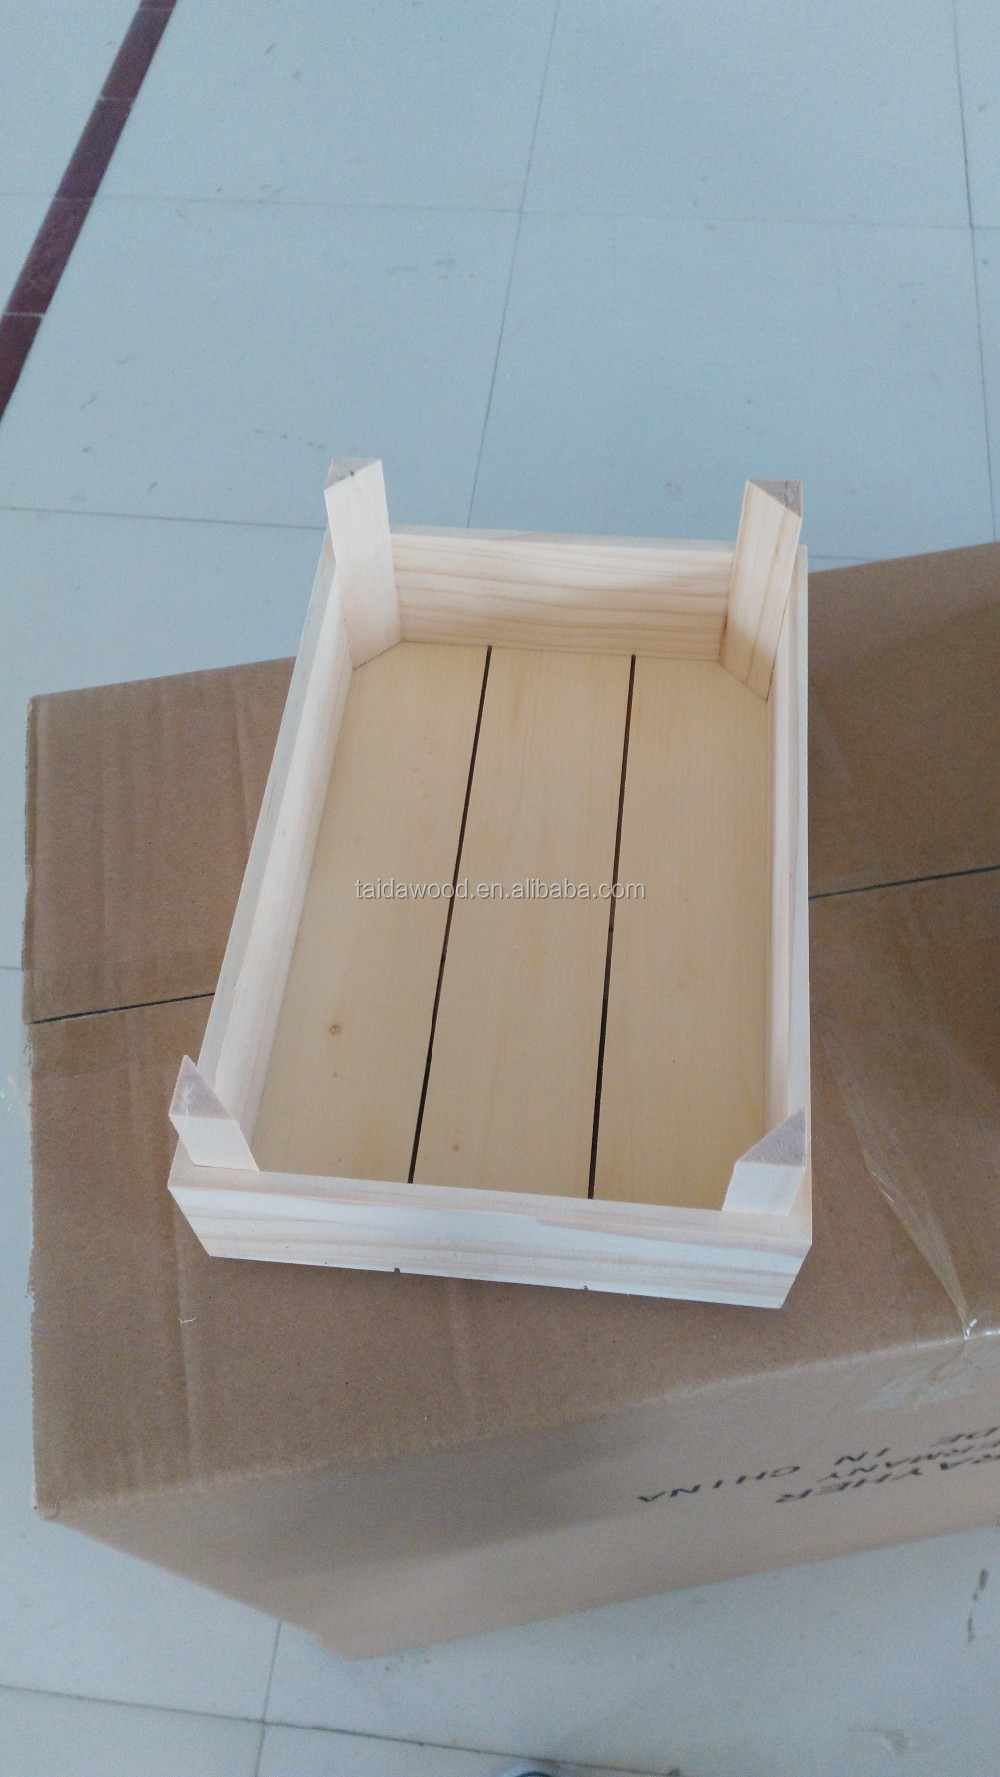 Grape tomatoes packing use wooden crates box wooden box for Uses for wooden boxes